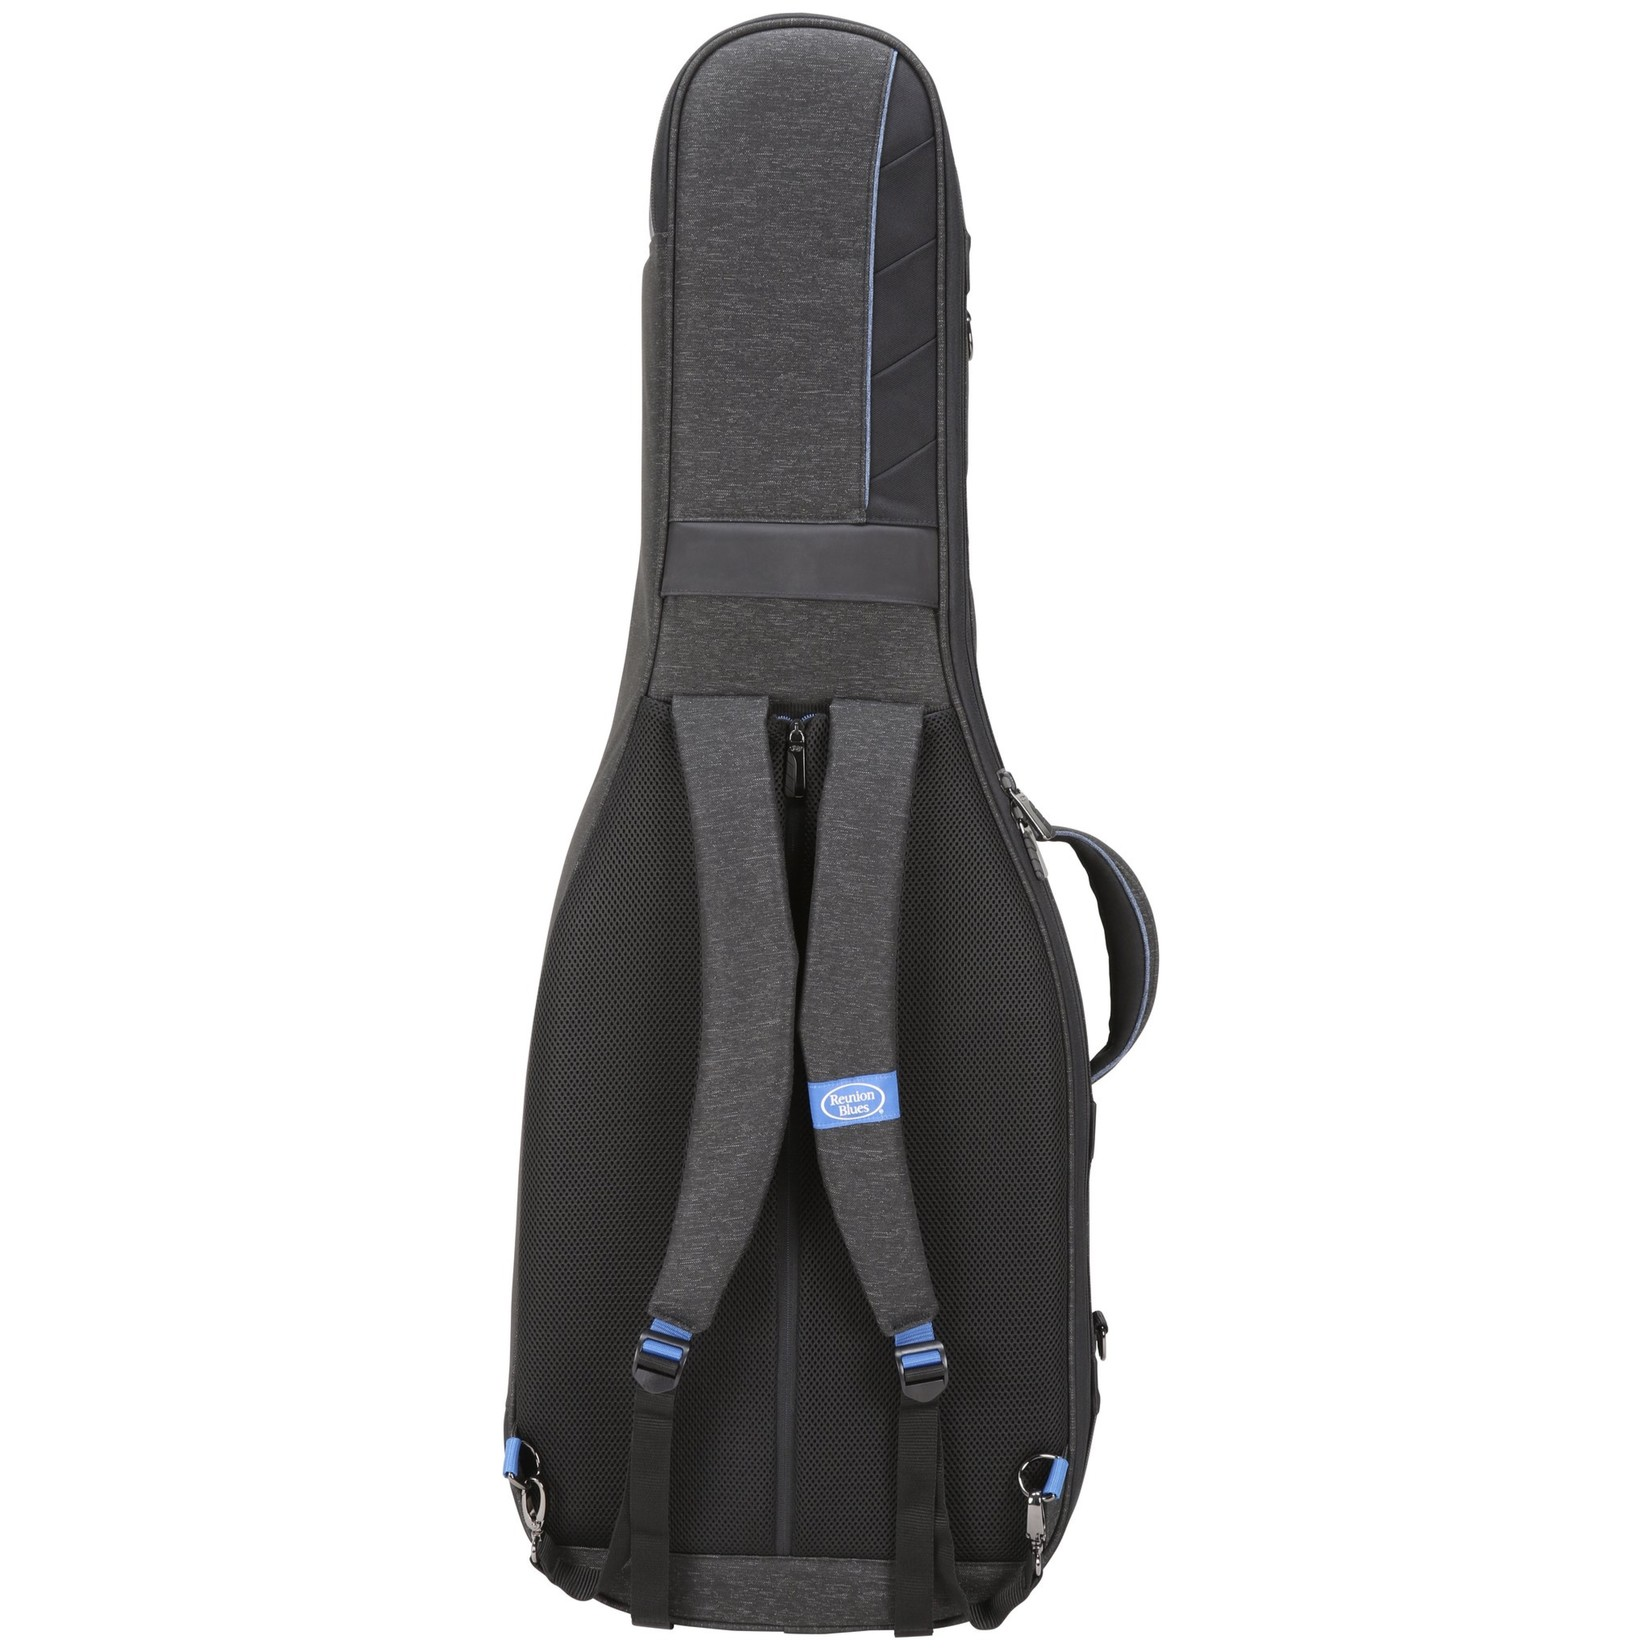 Reunion Blues Reunion Blues - RB Continental Voyager Double Electric Guitar Case - ultimate case for TWO guitars